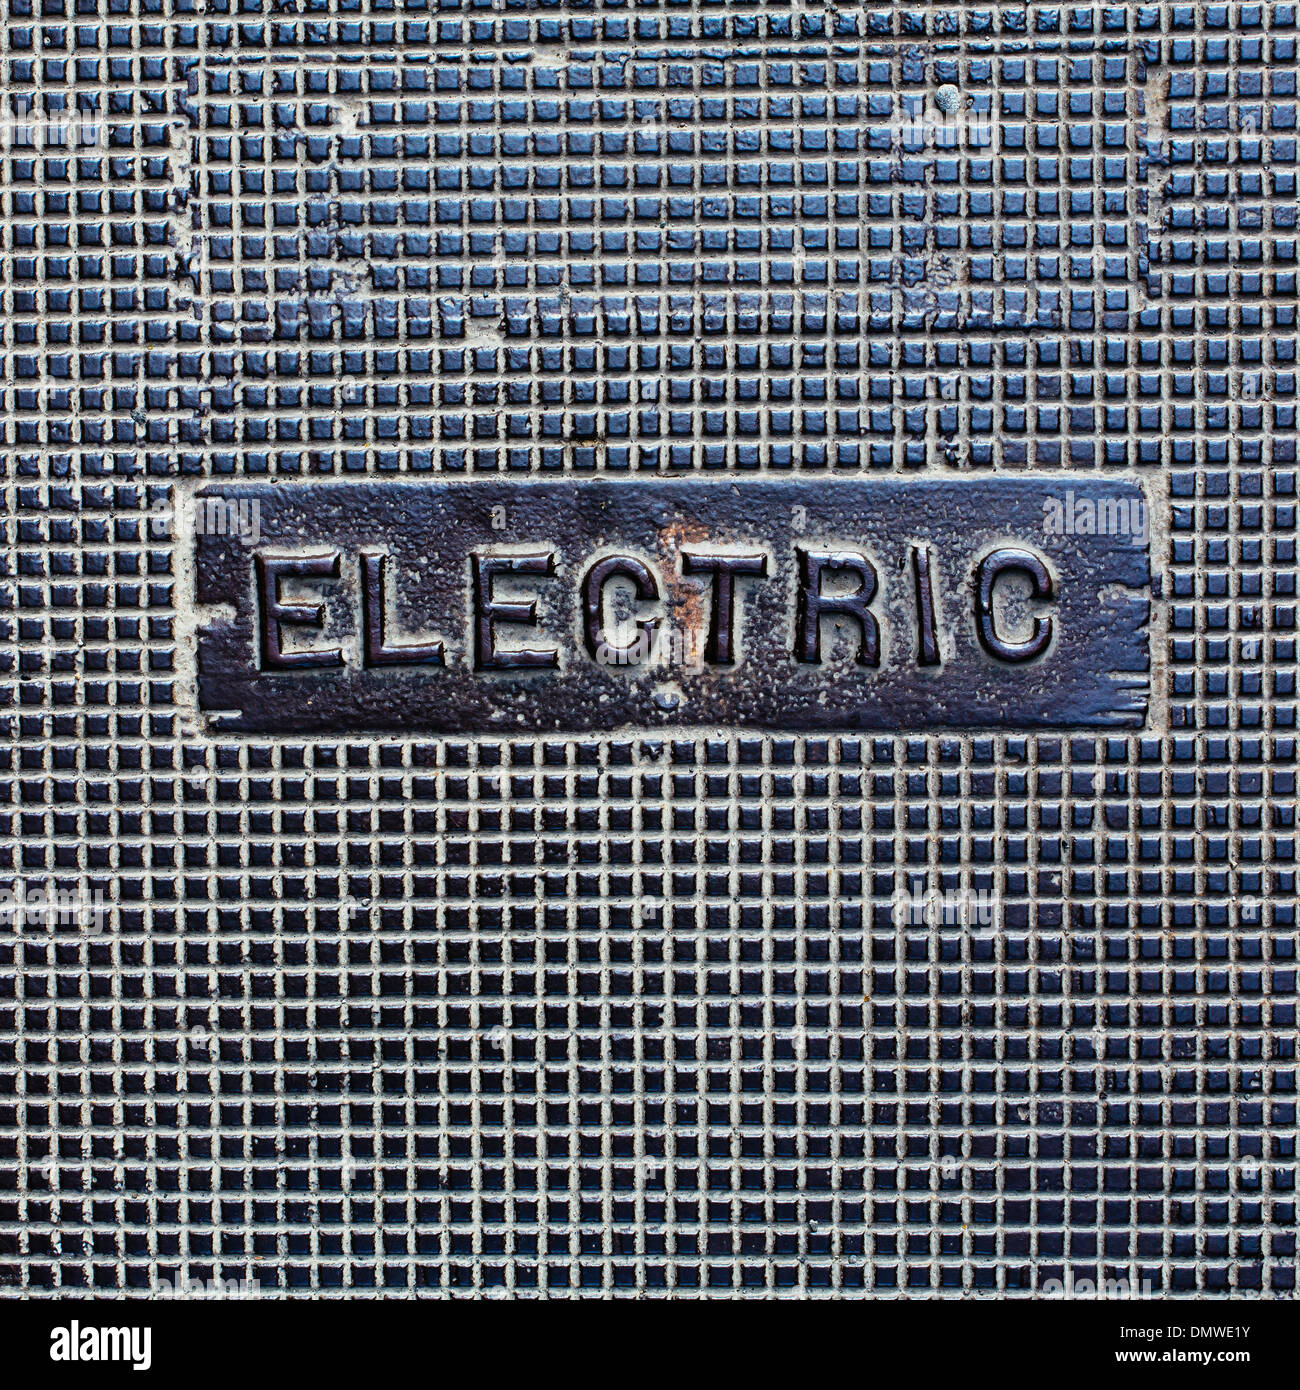 A utility cover made of metal with  word Electric. - Stock Image